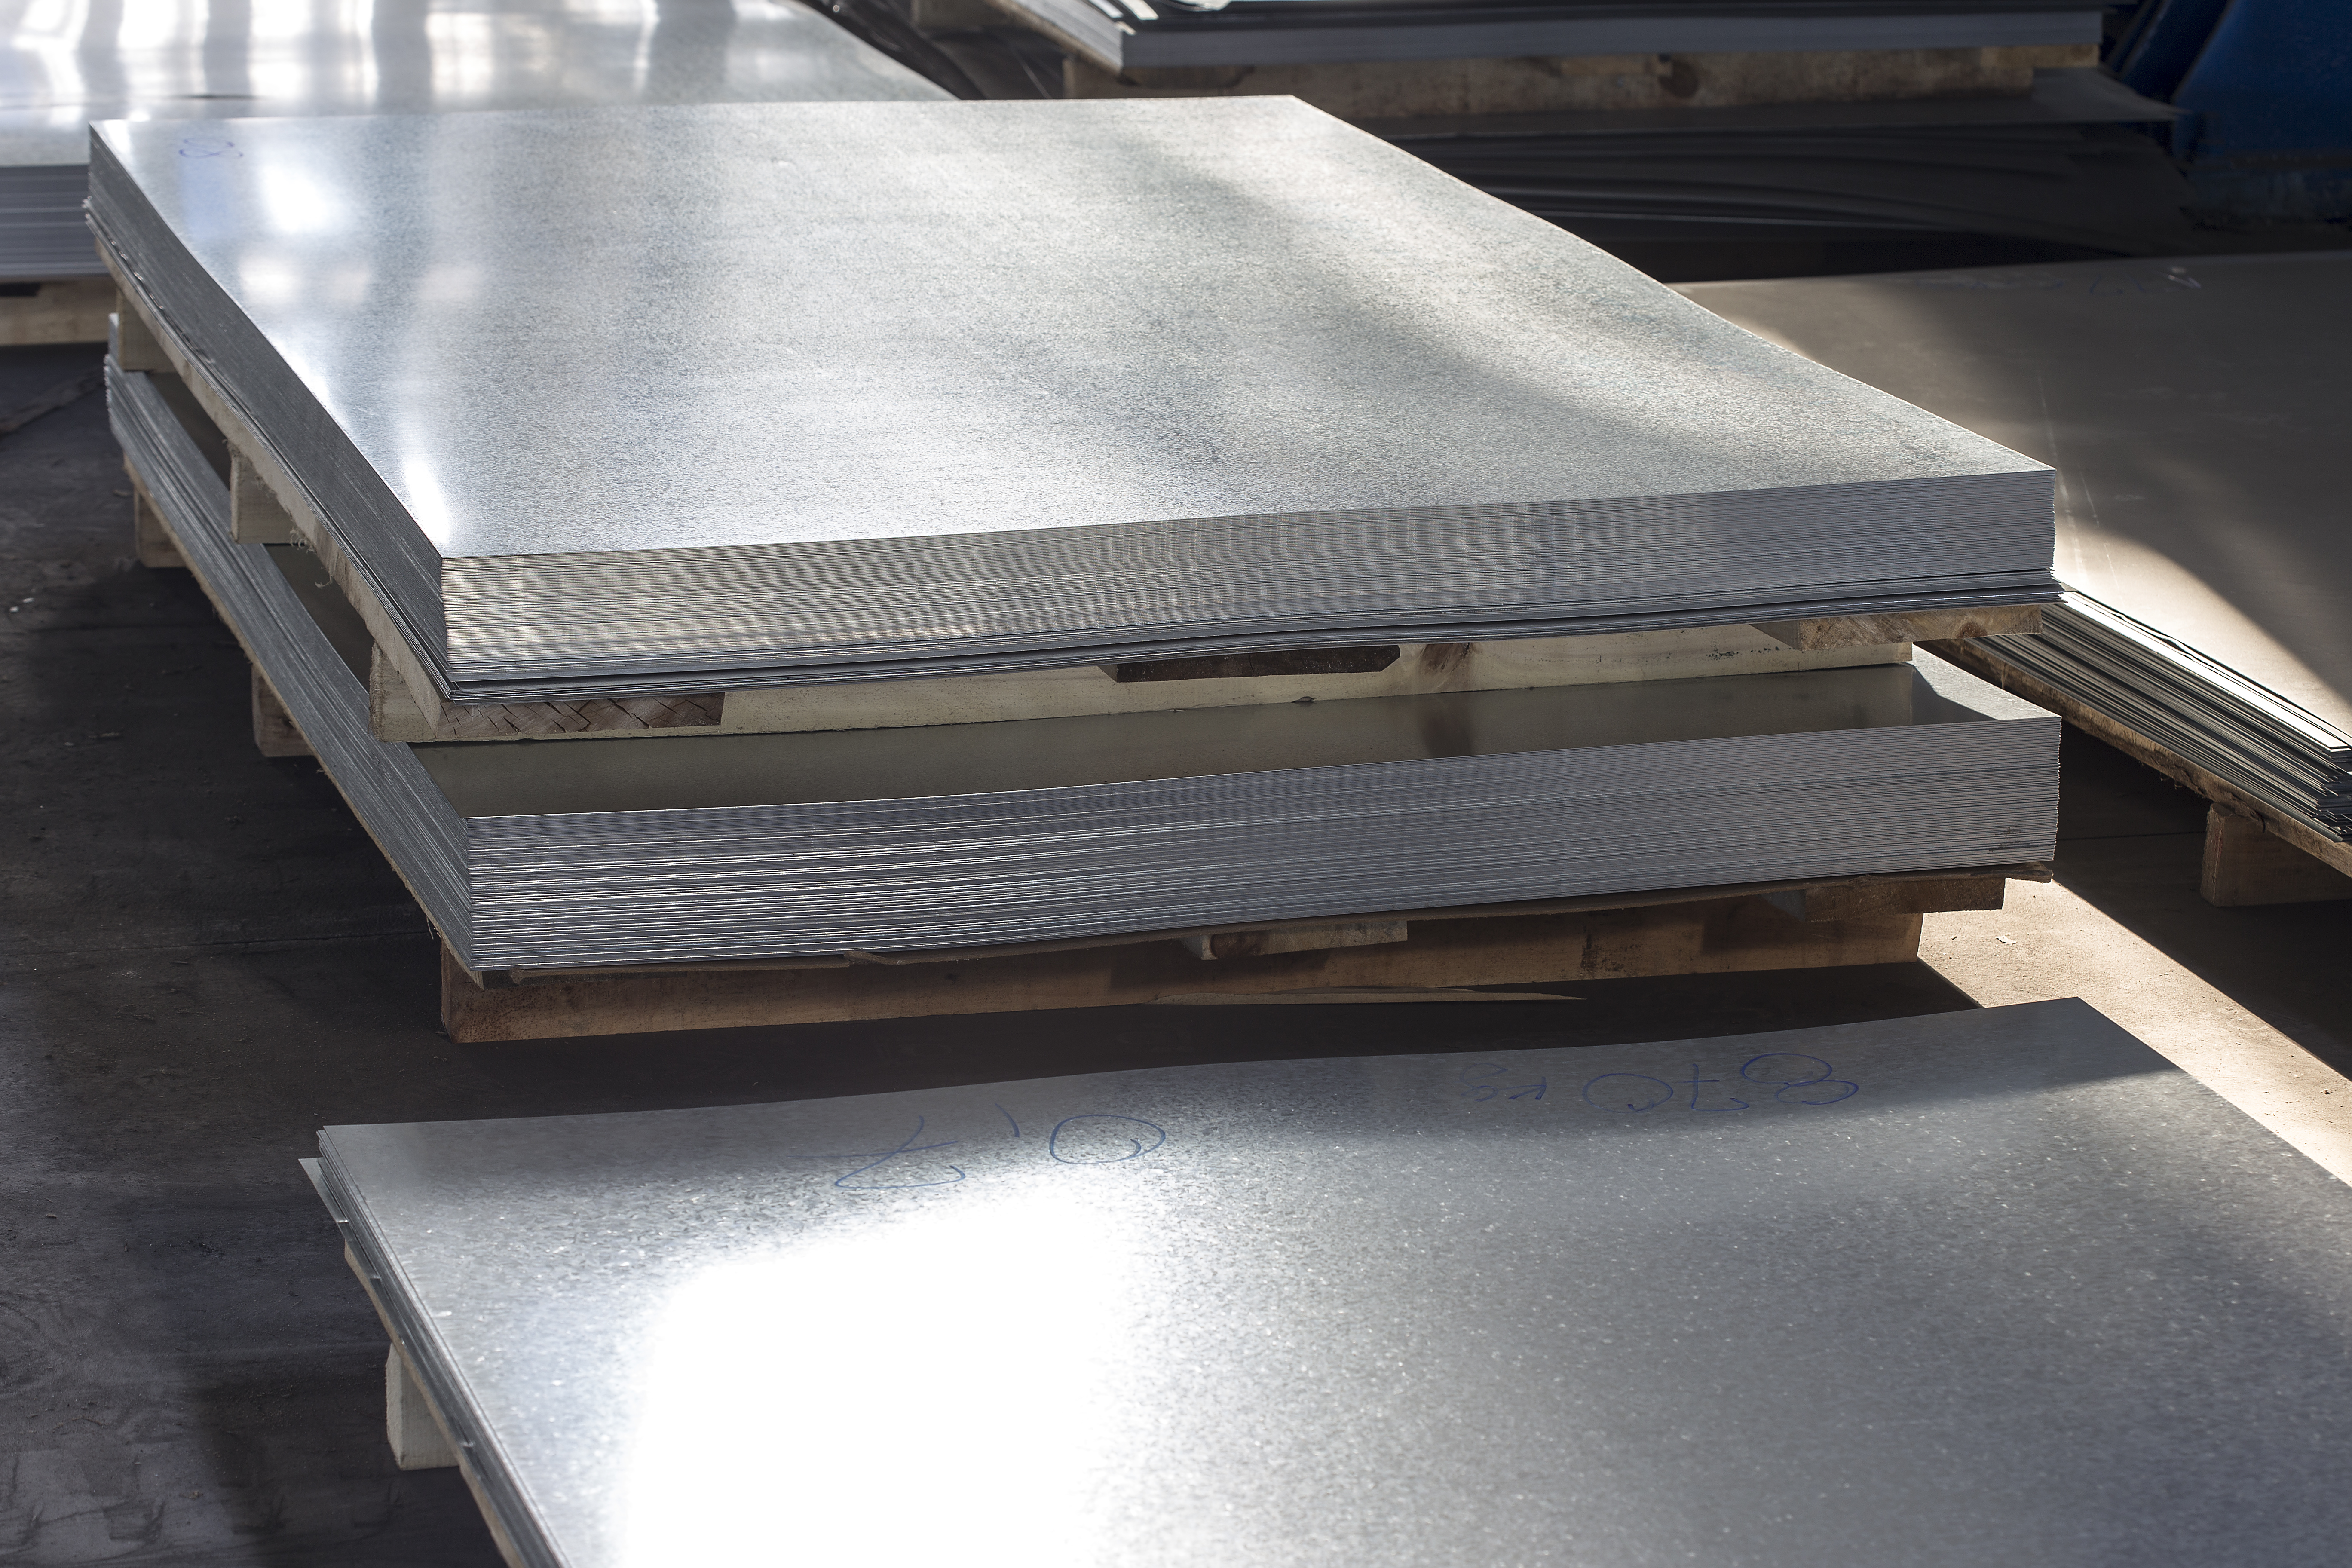 How to Calculate the Thickness of a Rectangular Plate